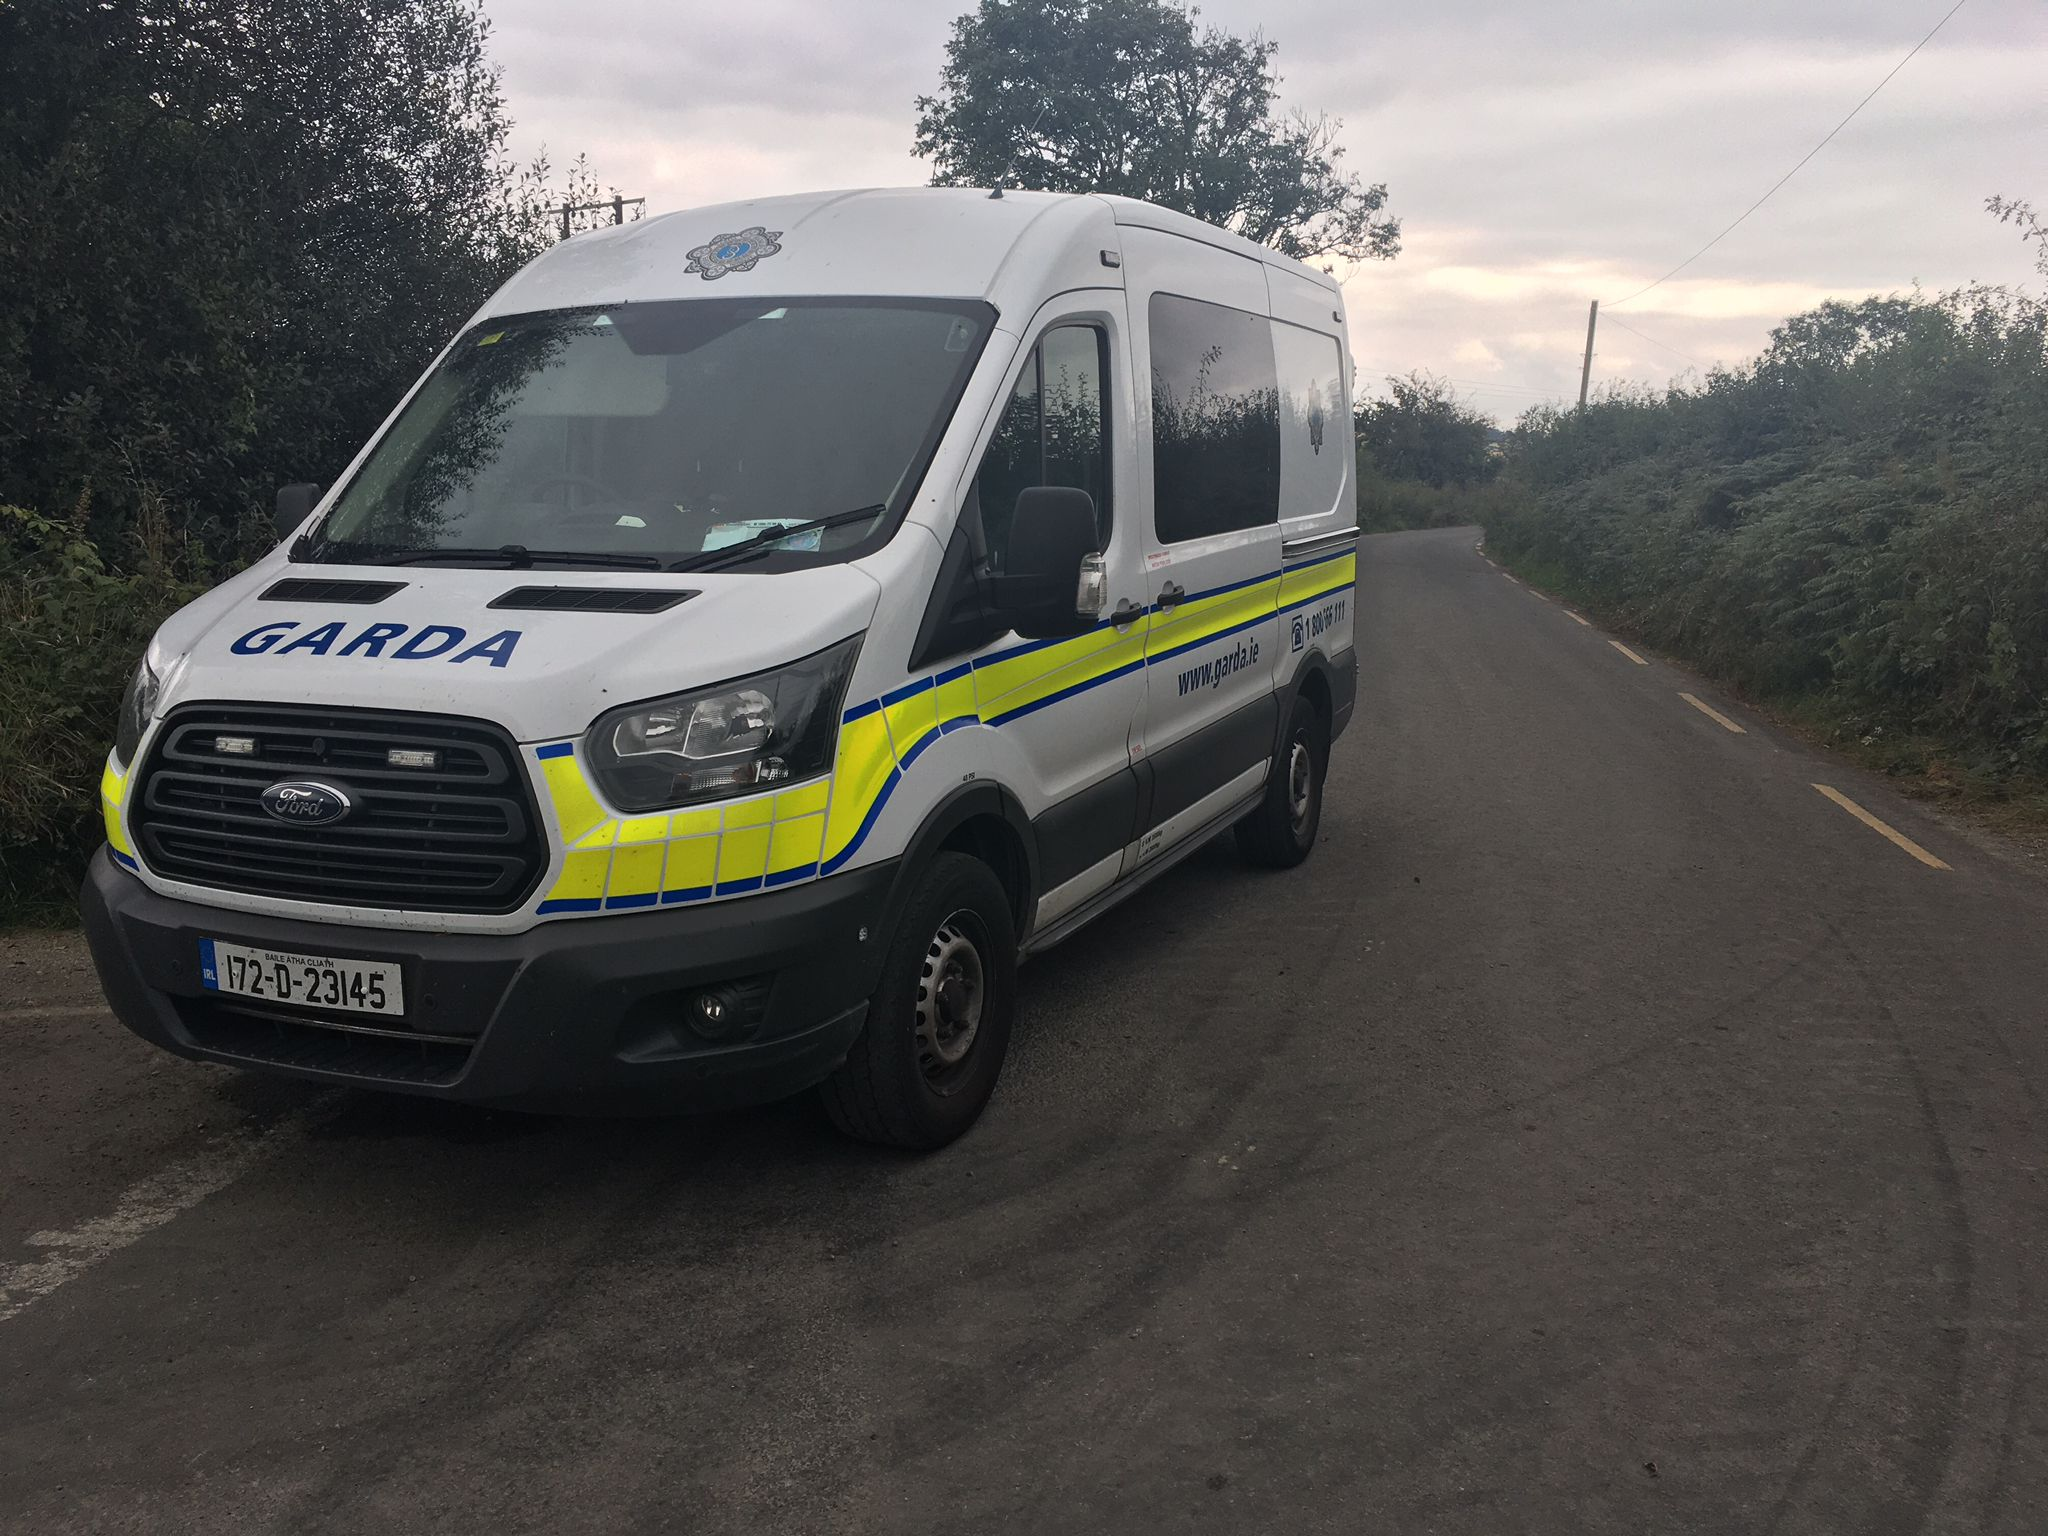 A garda van near the scene of a suspected double murder-suicide near Lixnaw in County Kerry, 08-09-2021. Image: Paul O'Donoghue/Newstalk